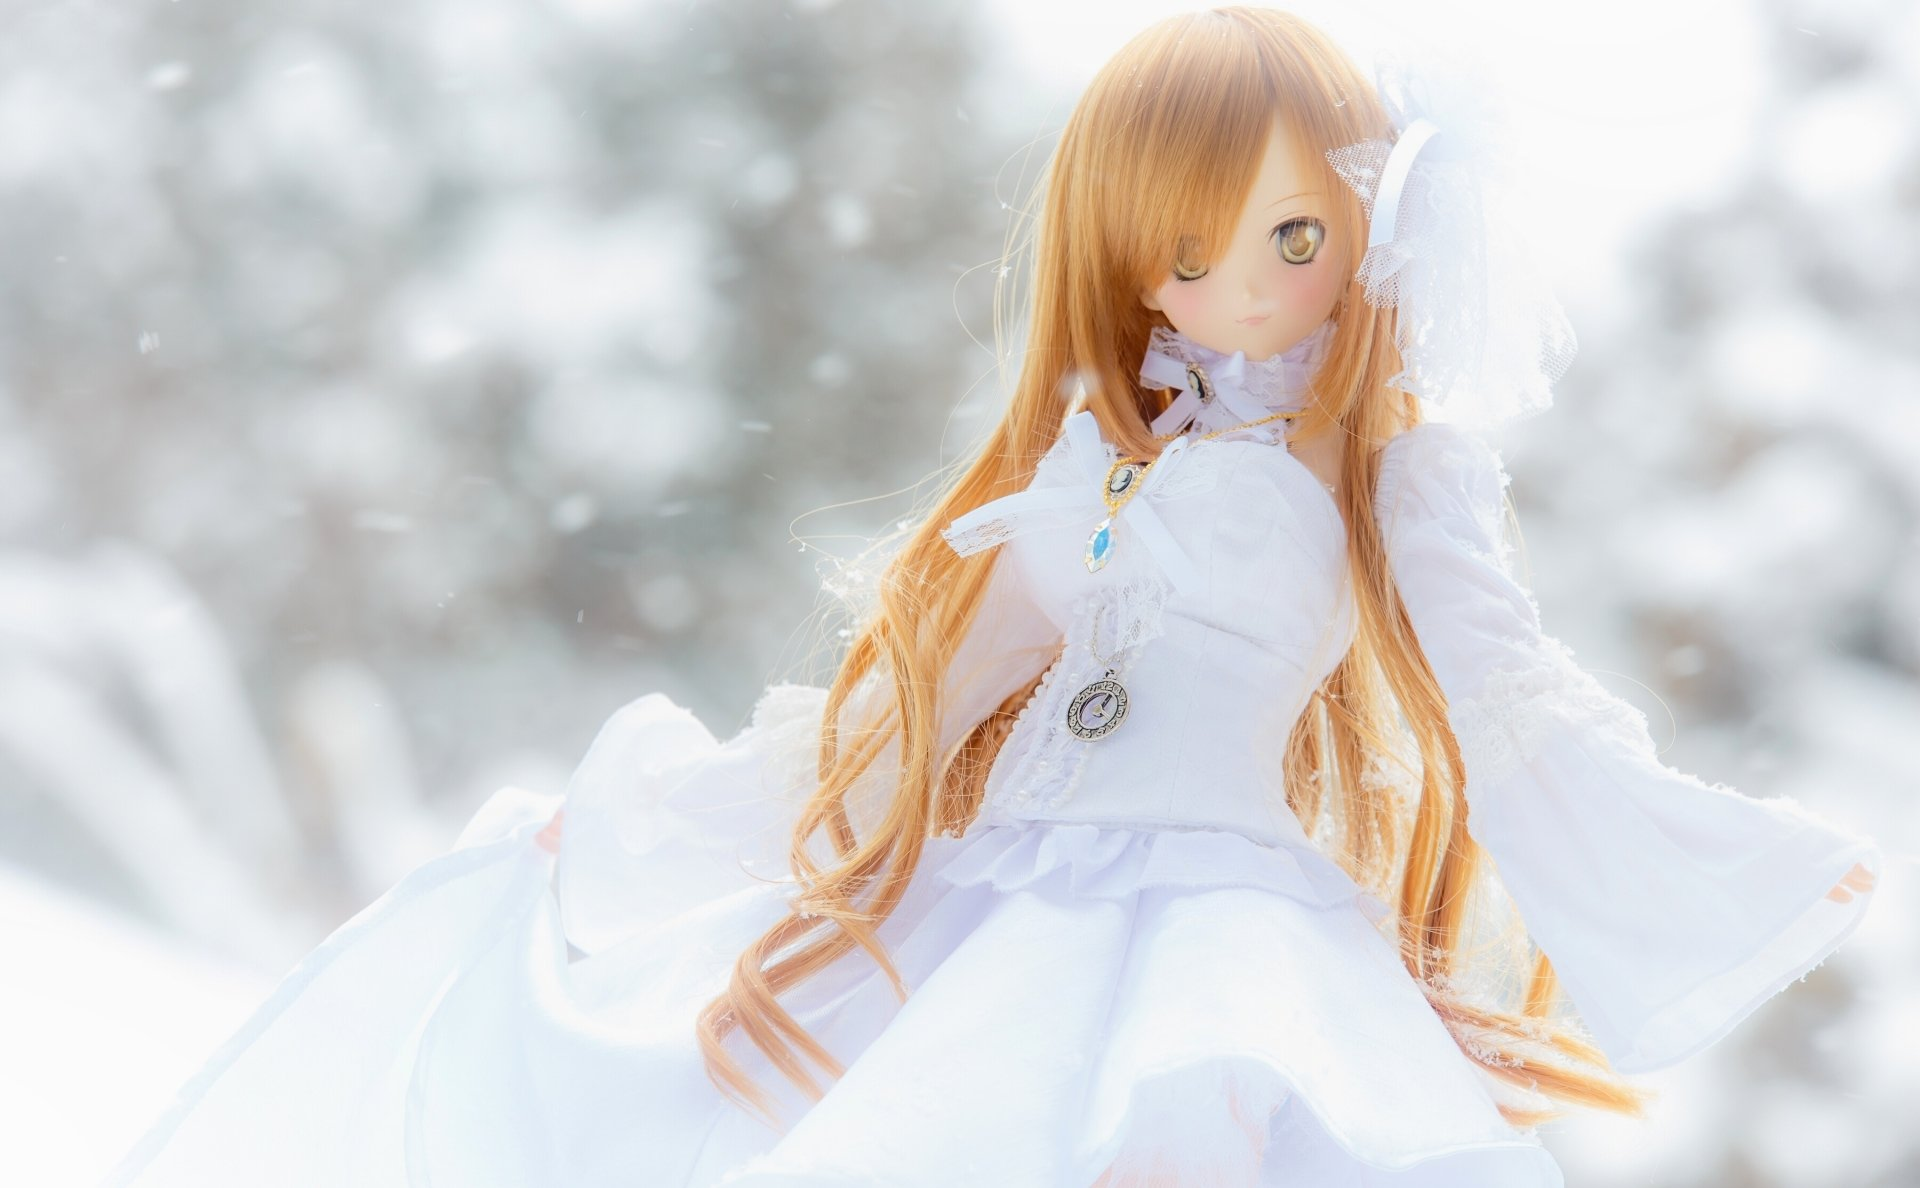 Wallpapers ID:1108796